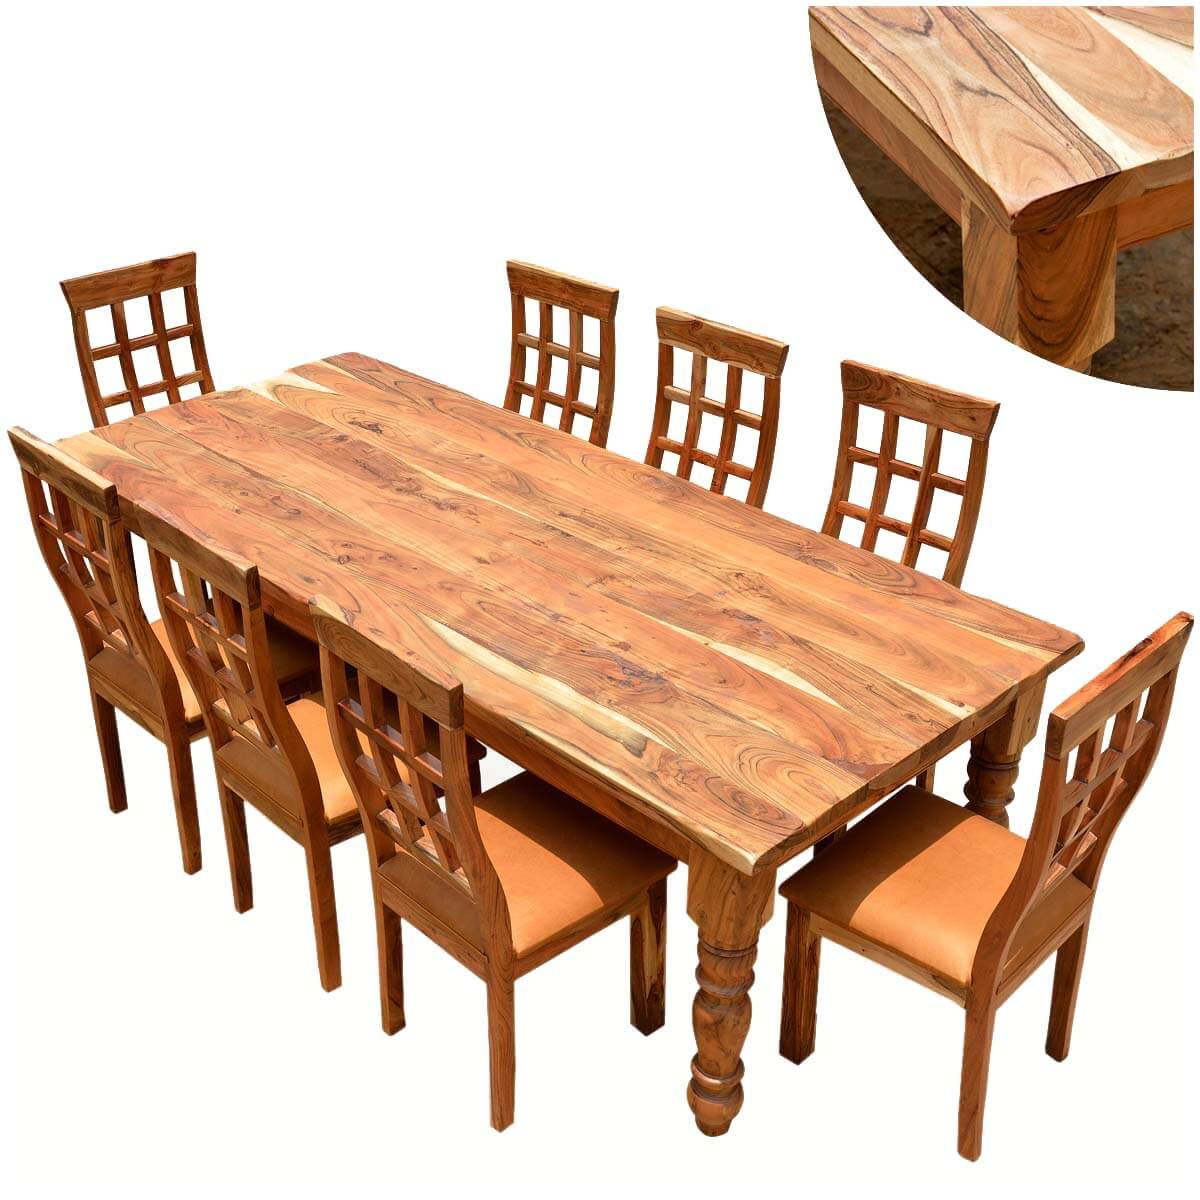 Farmhouse Dining Table And Chairs Rustic Furniture Farmhouse Solid Wood Dining Table Chair Set